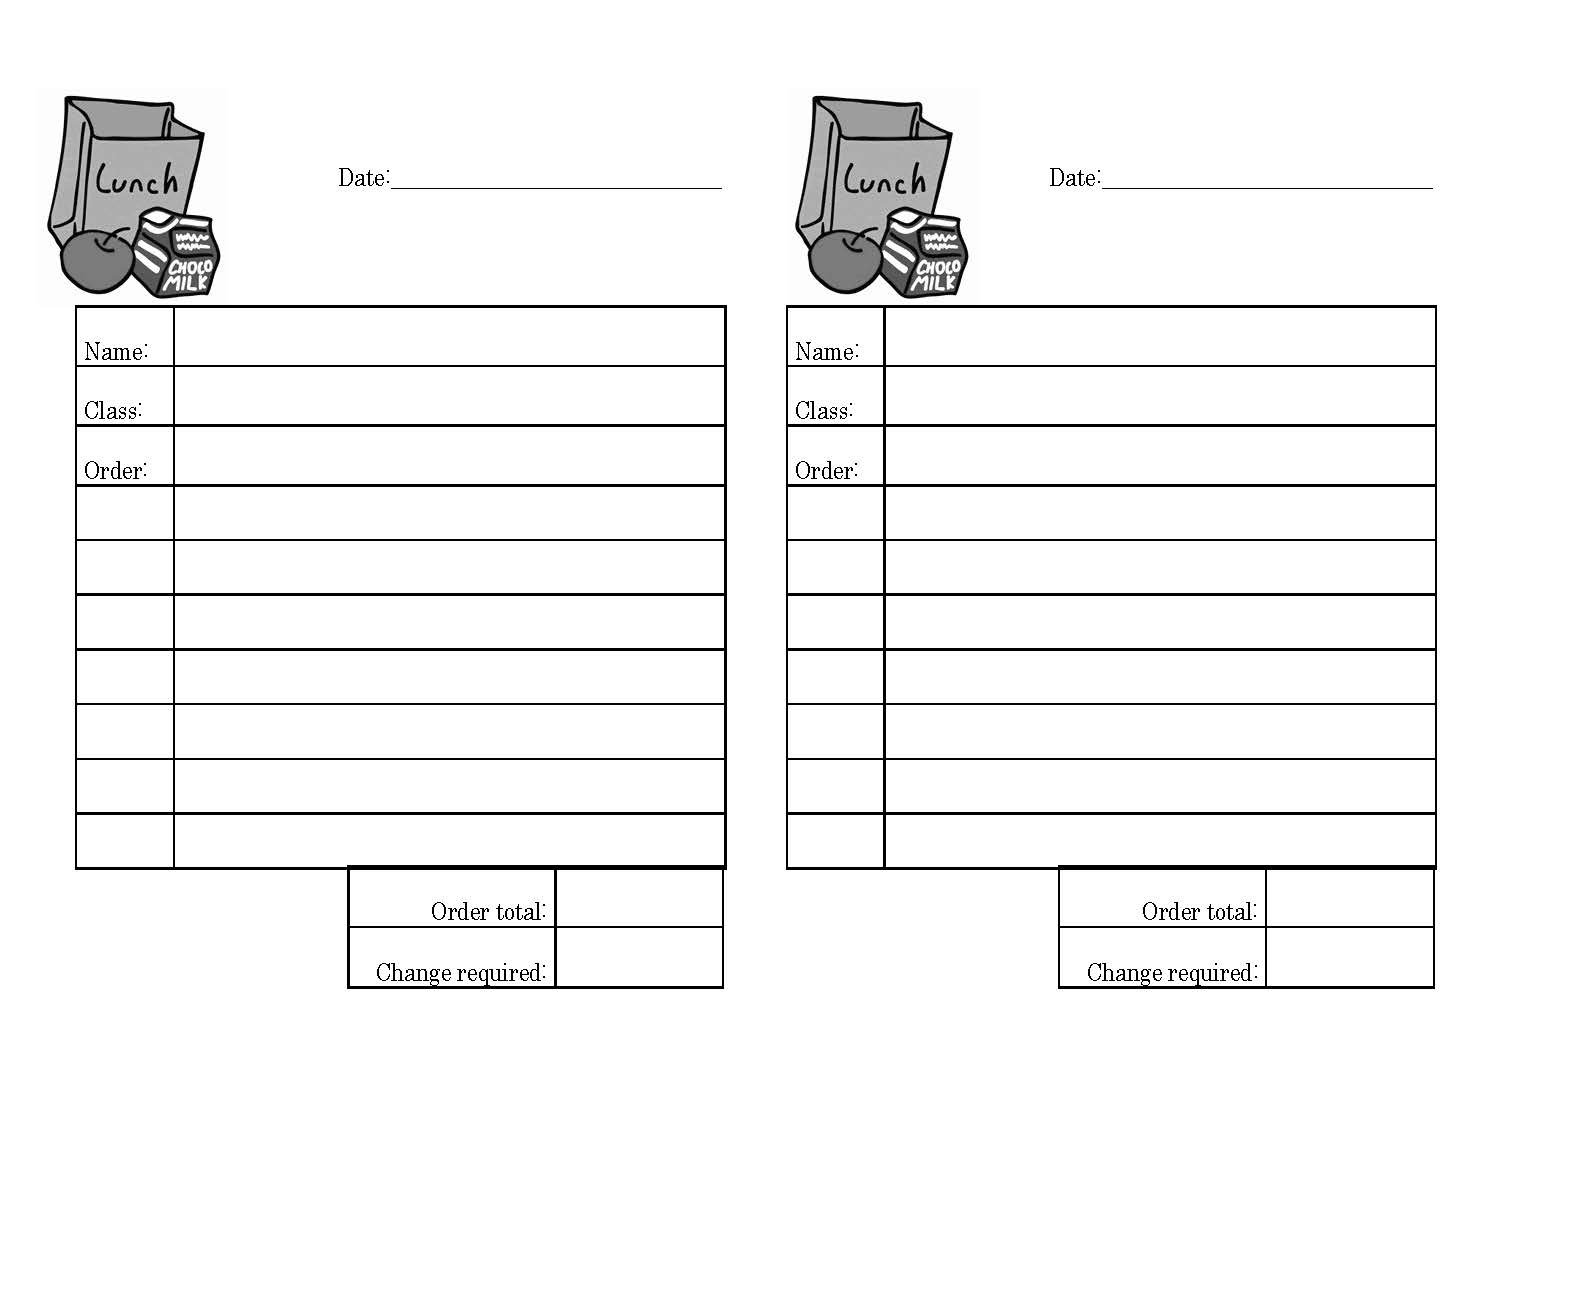 Office Lunch Order Form Template Under Bergdorfbib Co